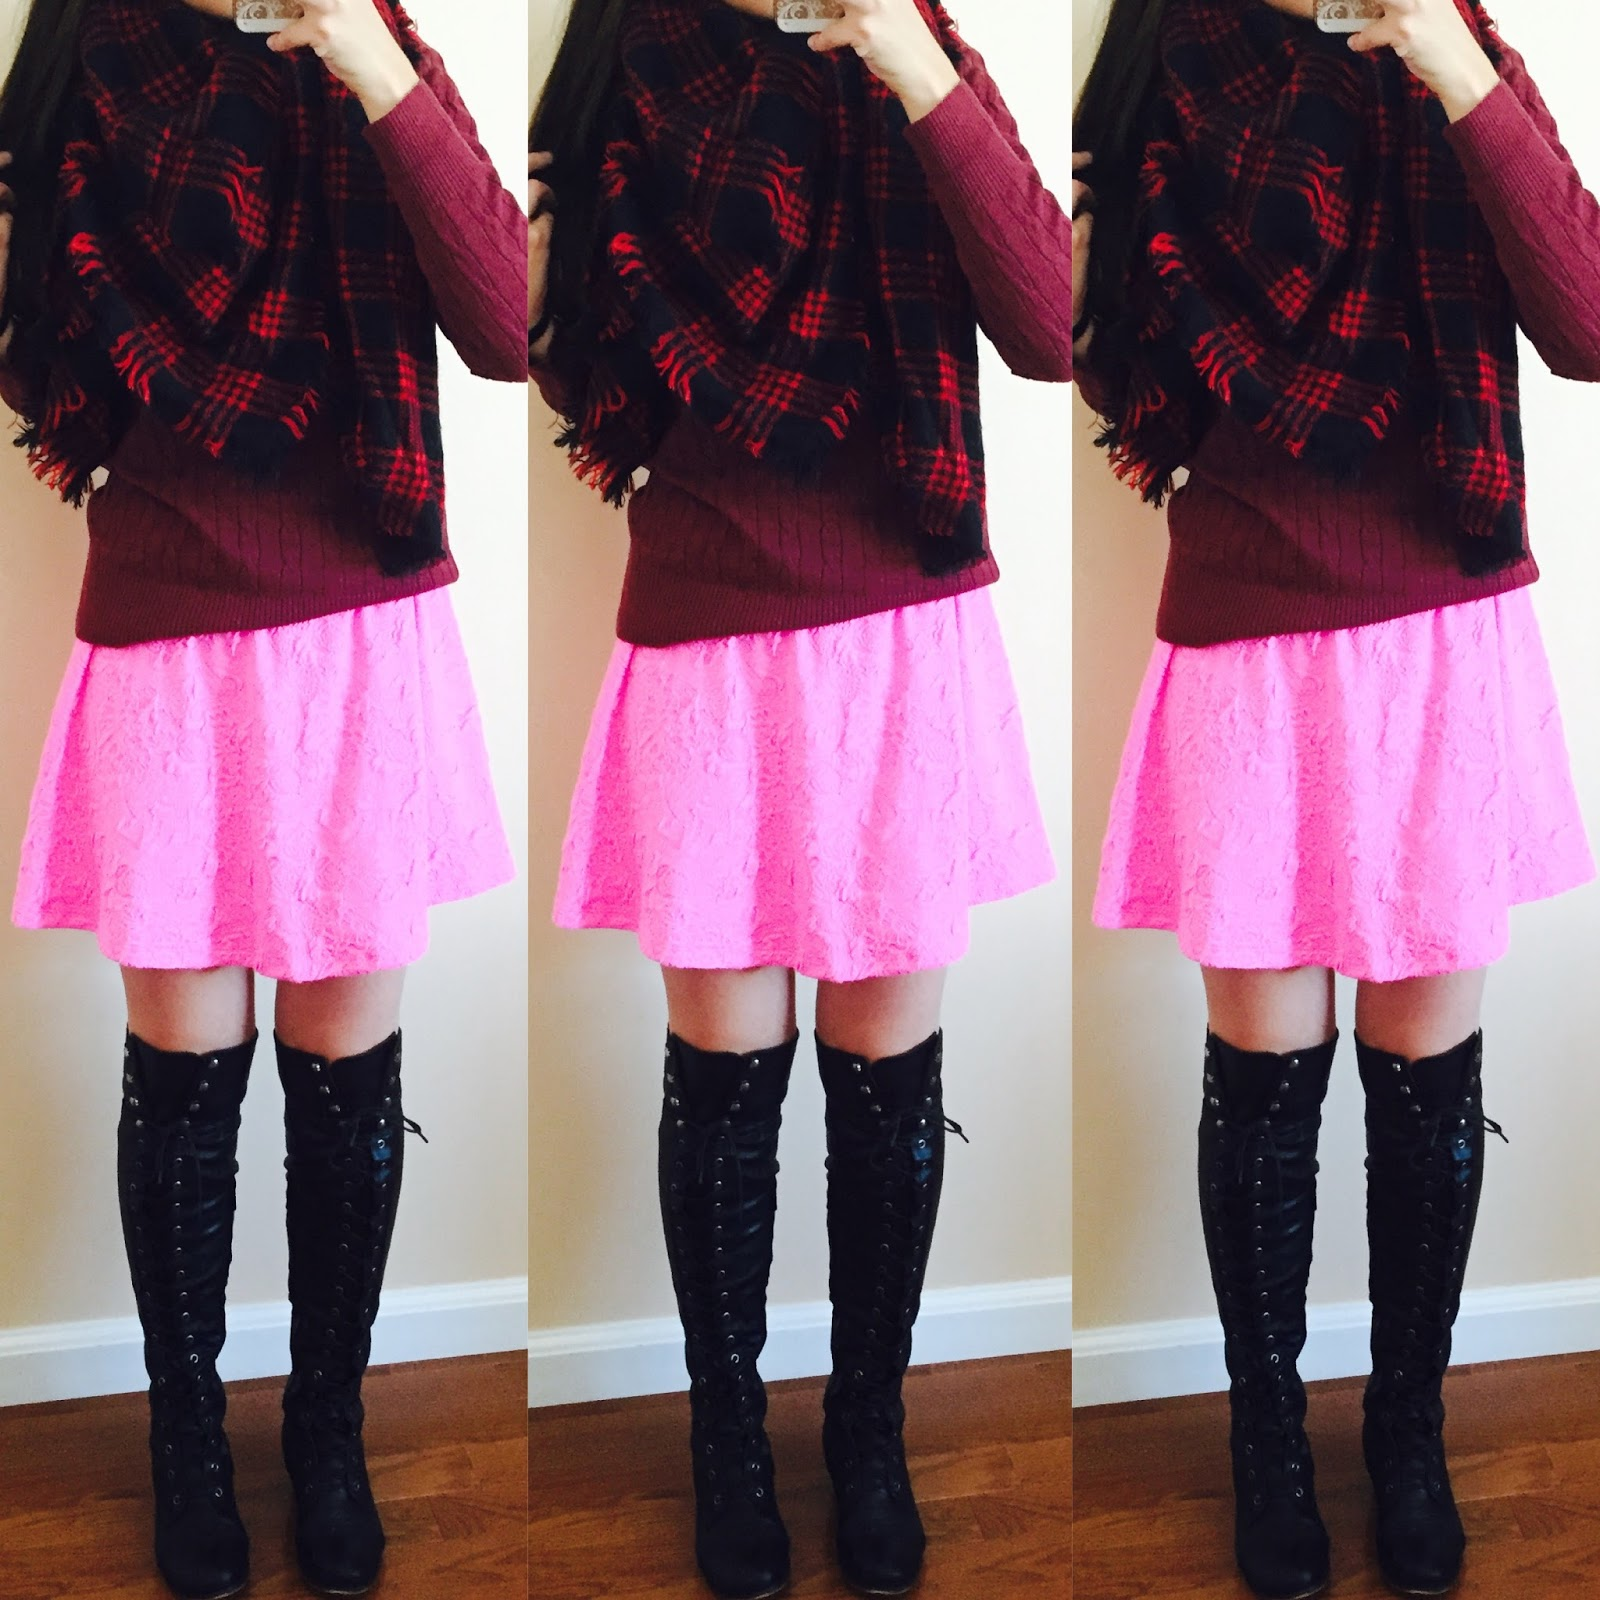 blanket scarf, 20 ways to style a pink dress, pink blush, pink dress with a sweater over it, knit sweater, brown over the knee boots, amiclubwear, fall outfit, how to style a dress for fall with boots,  two toned over the knee boots, pink knit sweater over a pink dress, how to style a knit sweater, fall to winter outfit, winter outfit, ankle booties, pinkblush draped cardigan, striped cardigan, ankle booties, grey cardigan, beige over the knee boots, white scarf, how to make a summer dress into a fall outfit, aztec cardigan, pastel colors for fall,